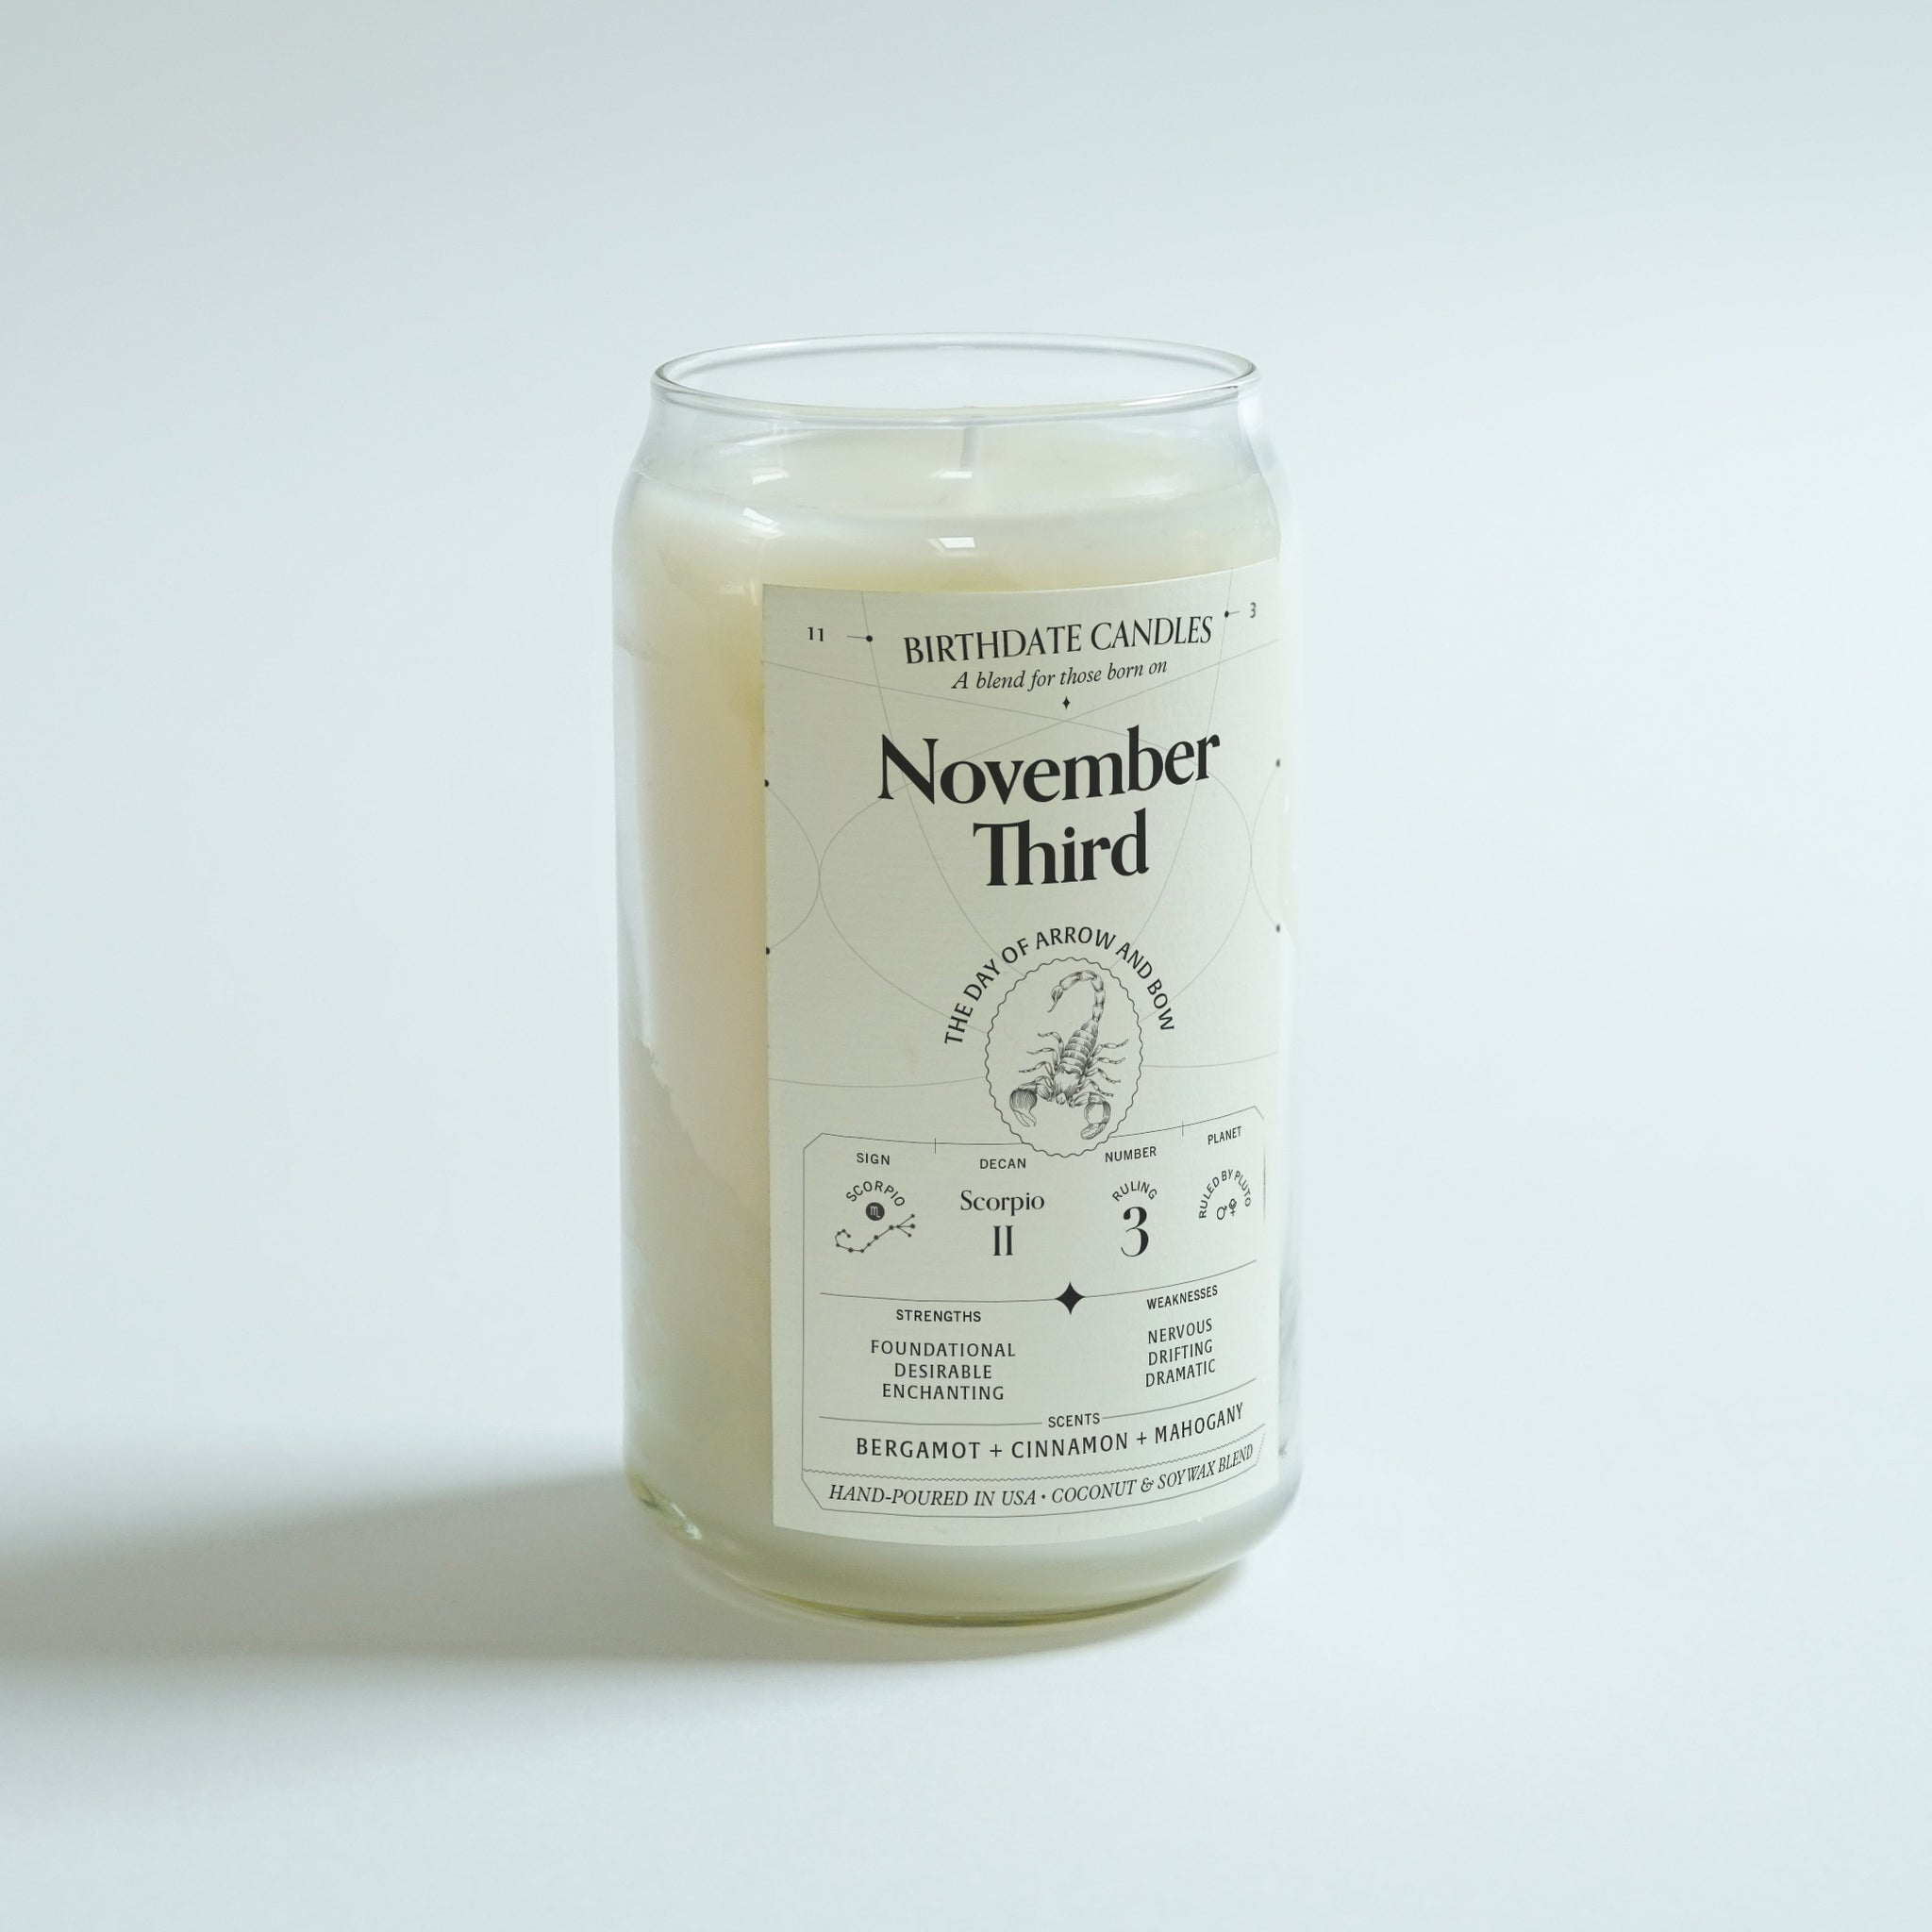 The November Third Candle